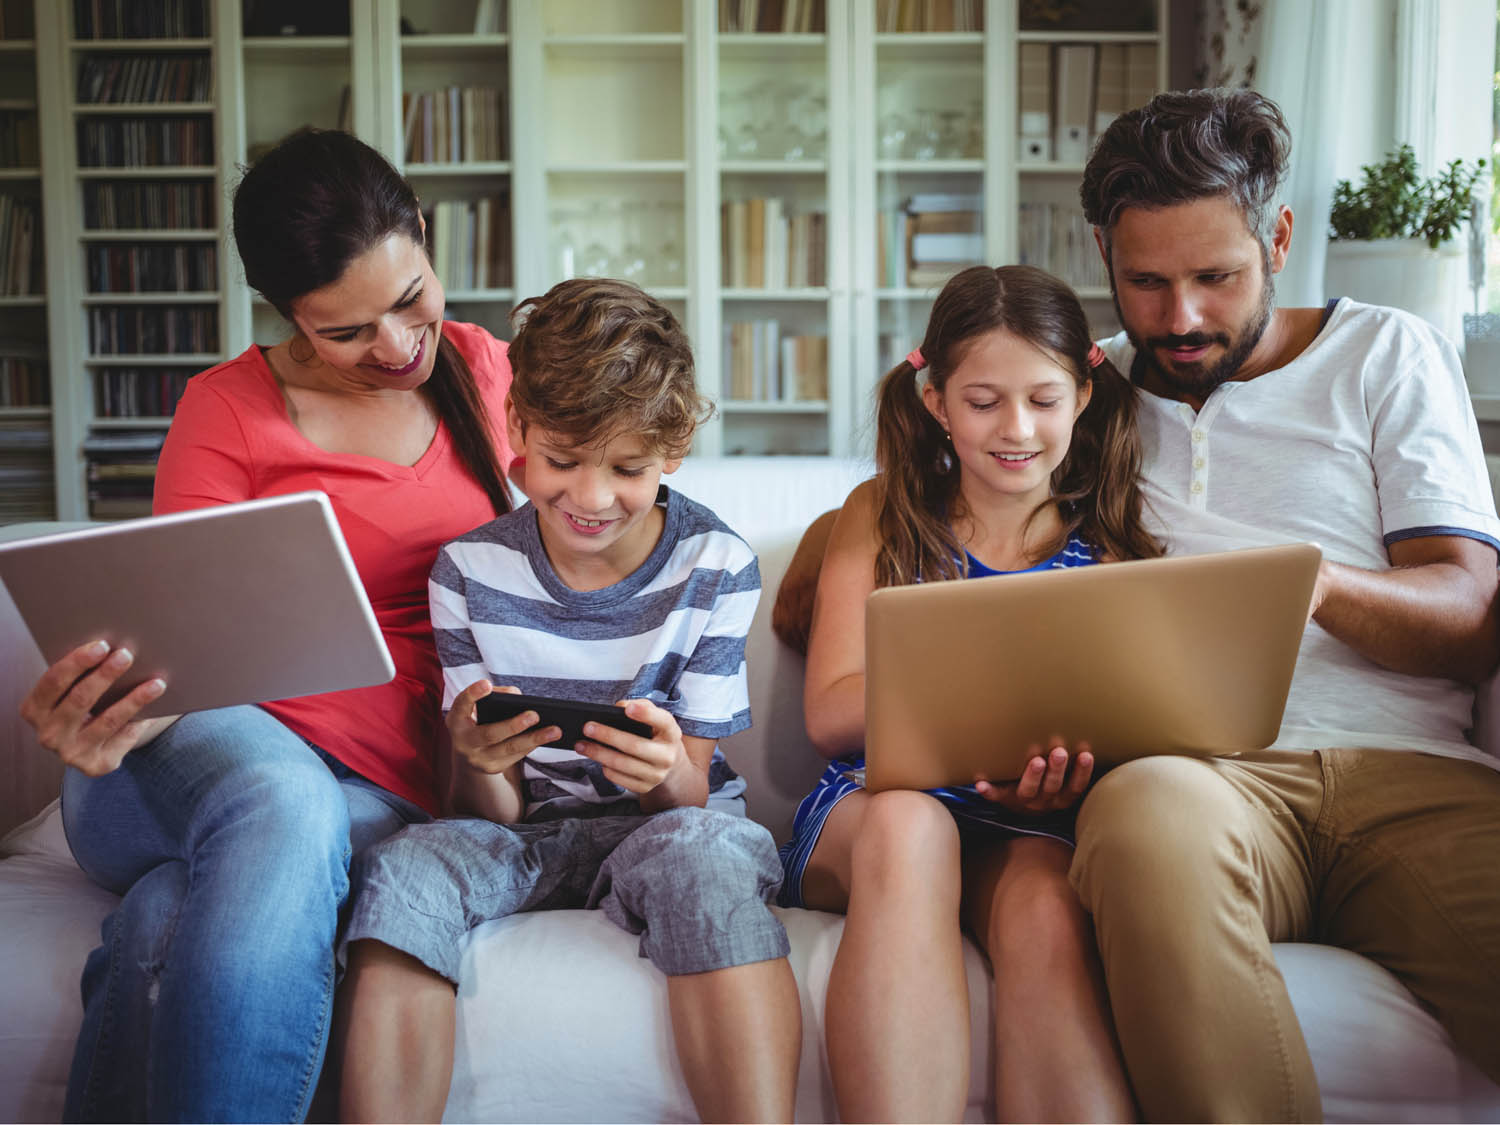 The internet has become a necessity for all homeowners. You need for work, school and entertainment. That's why knowing what's a good internet speed and getting it has become imperative.